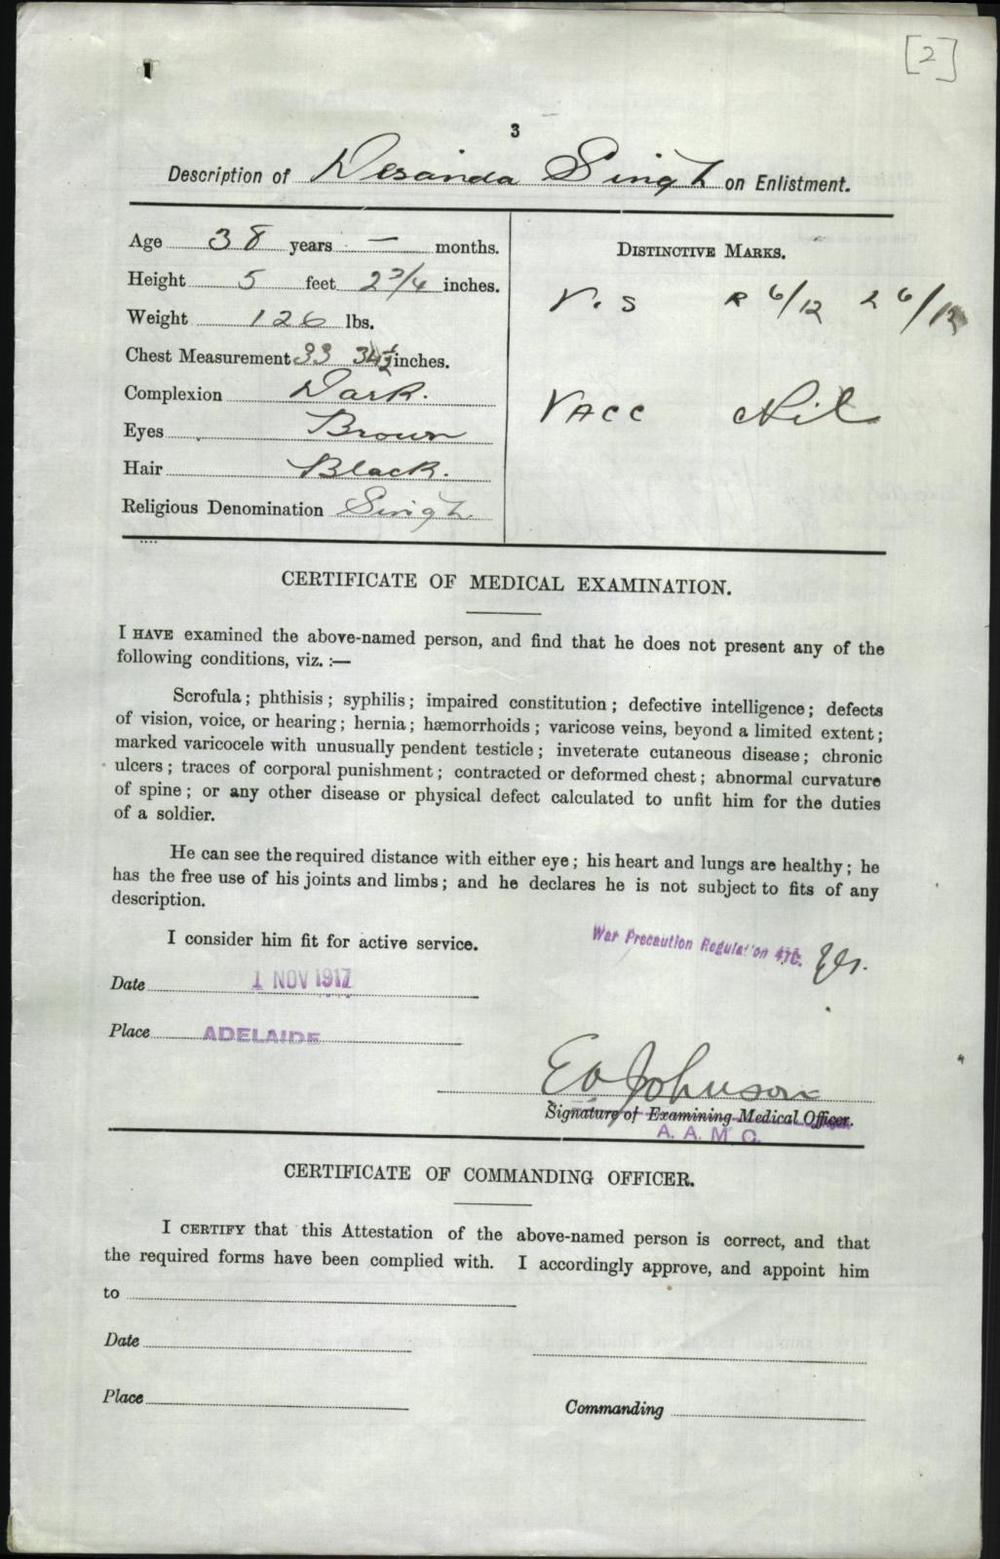 Desanda Singh - Enlistment form for WW1